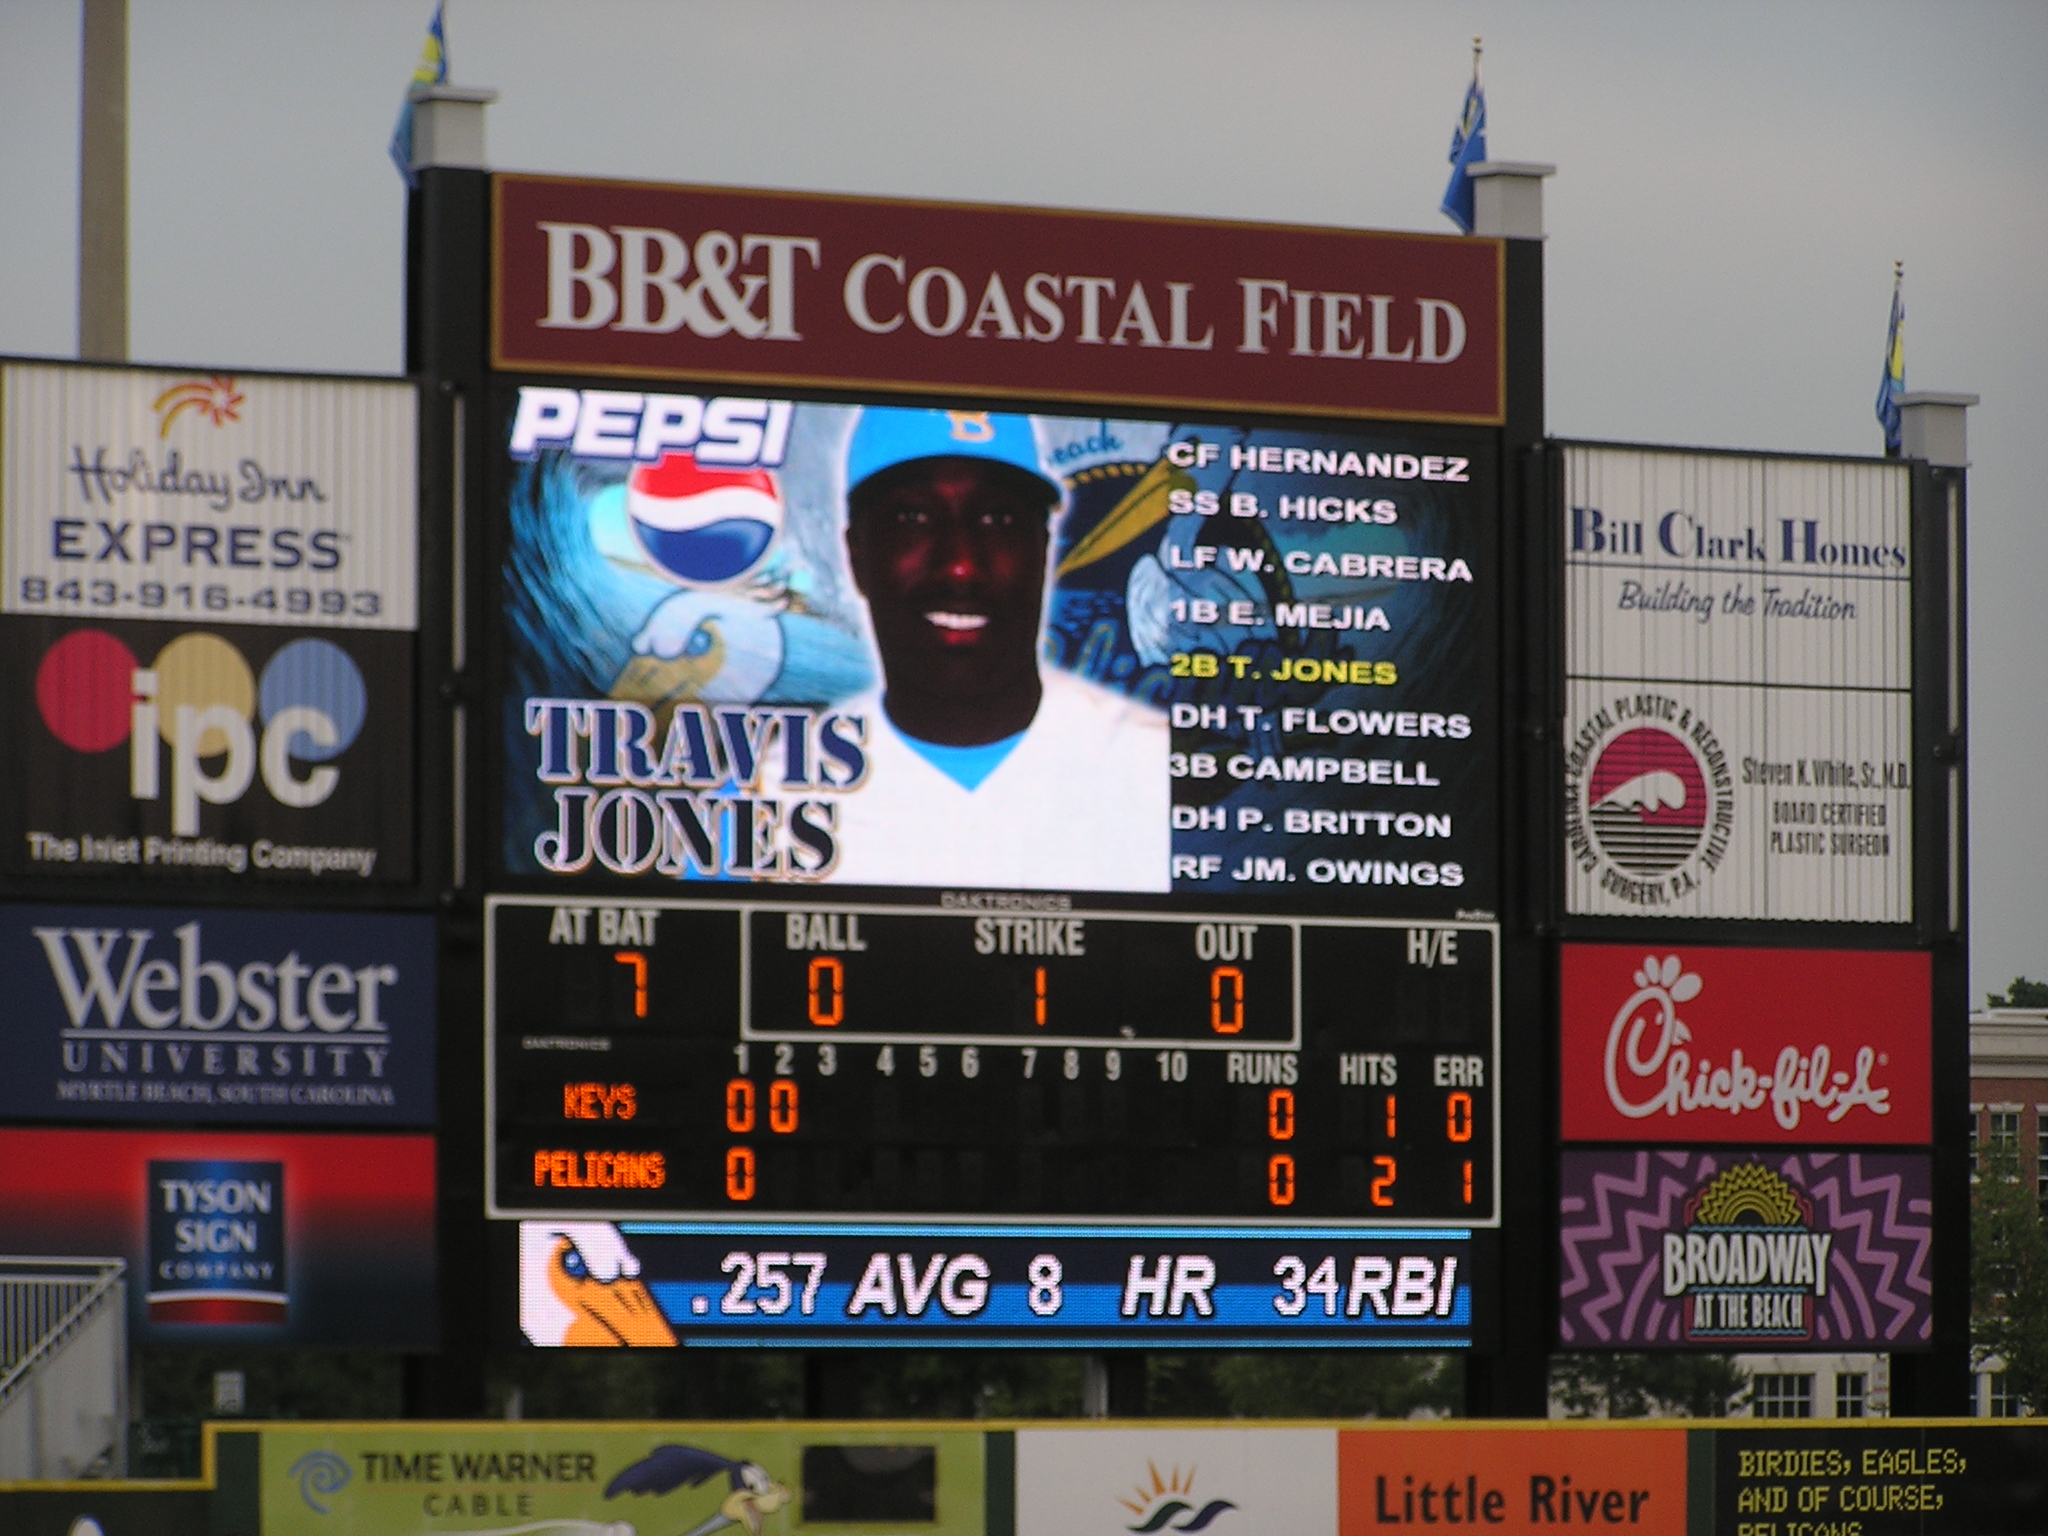 The Main Scoreboard - BB&T Coastal Field